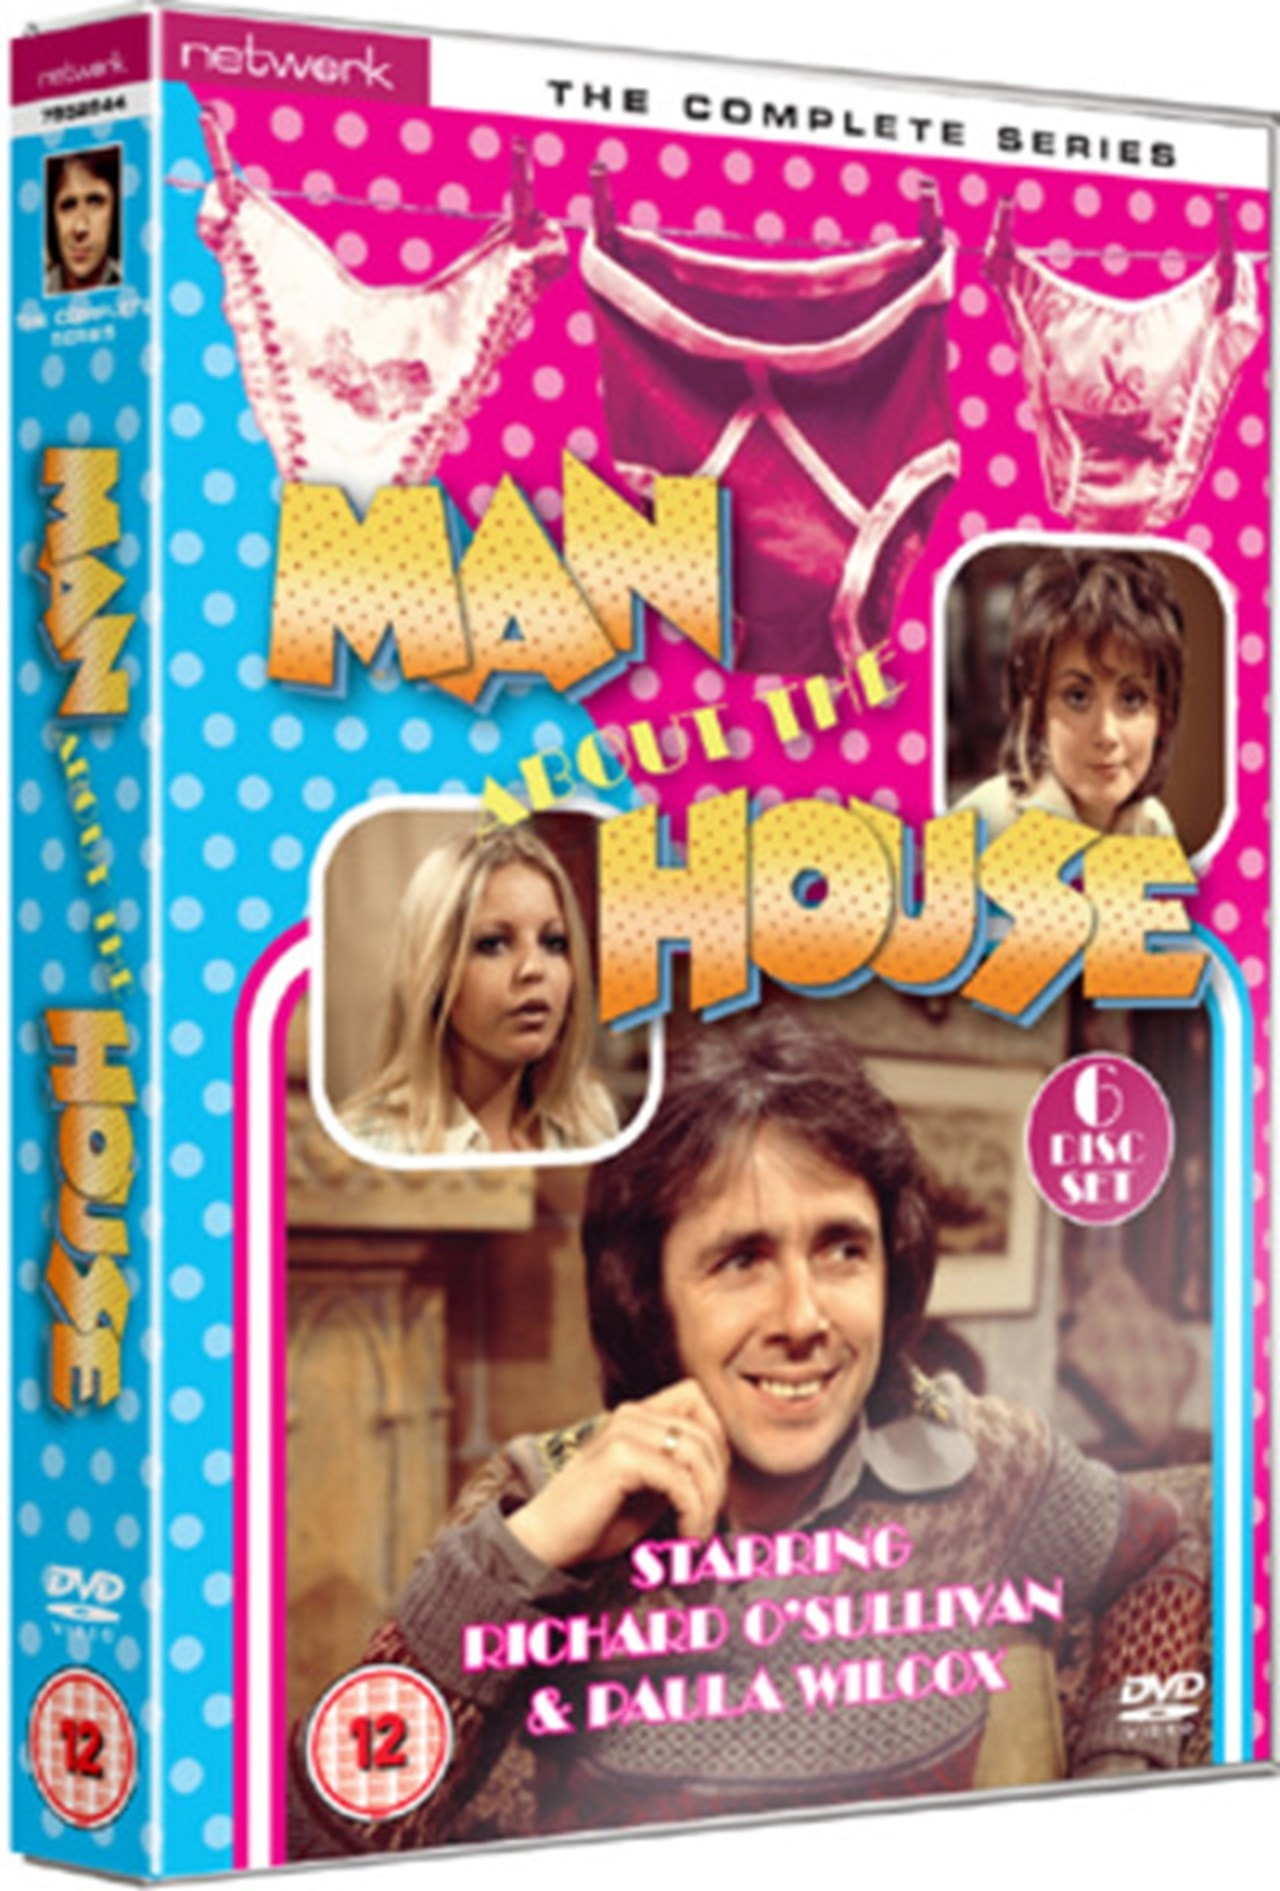 House The Collection Blu Ray Box Set Free Shipping Over 20 Hmv Store